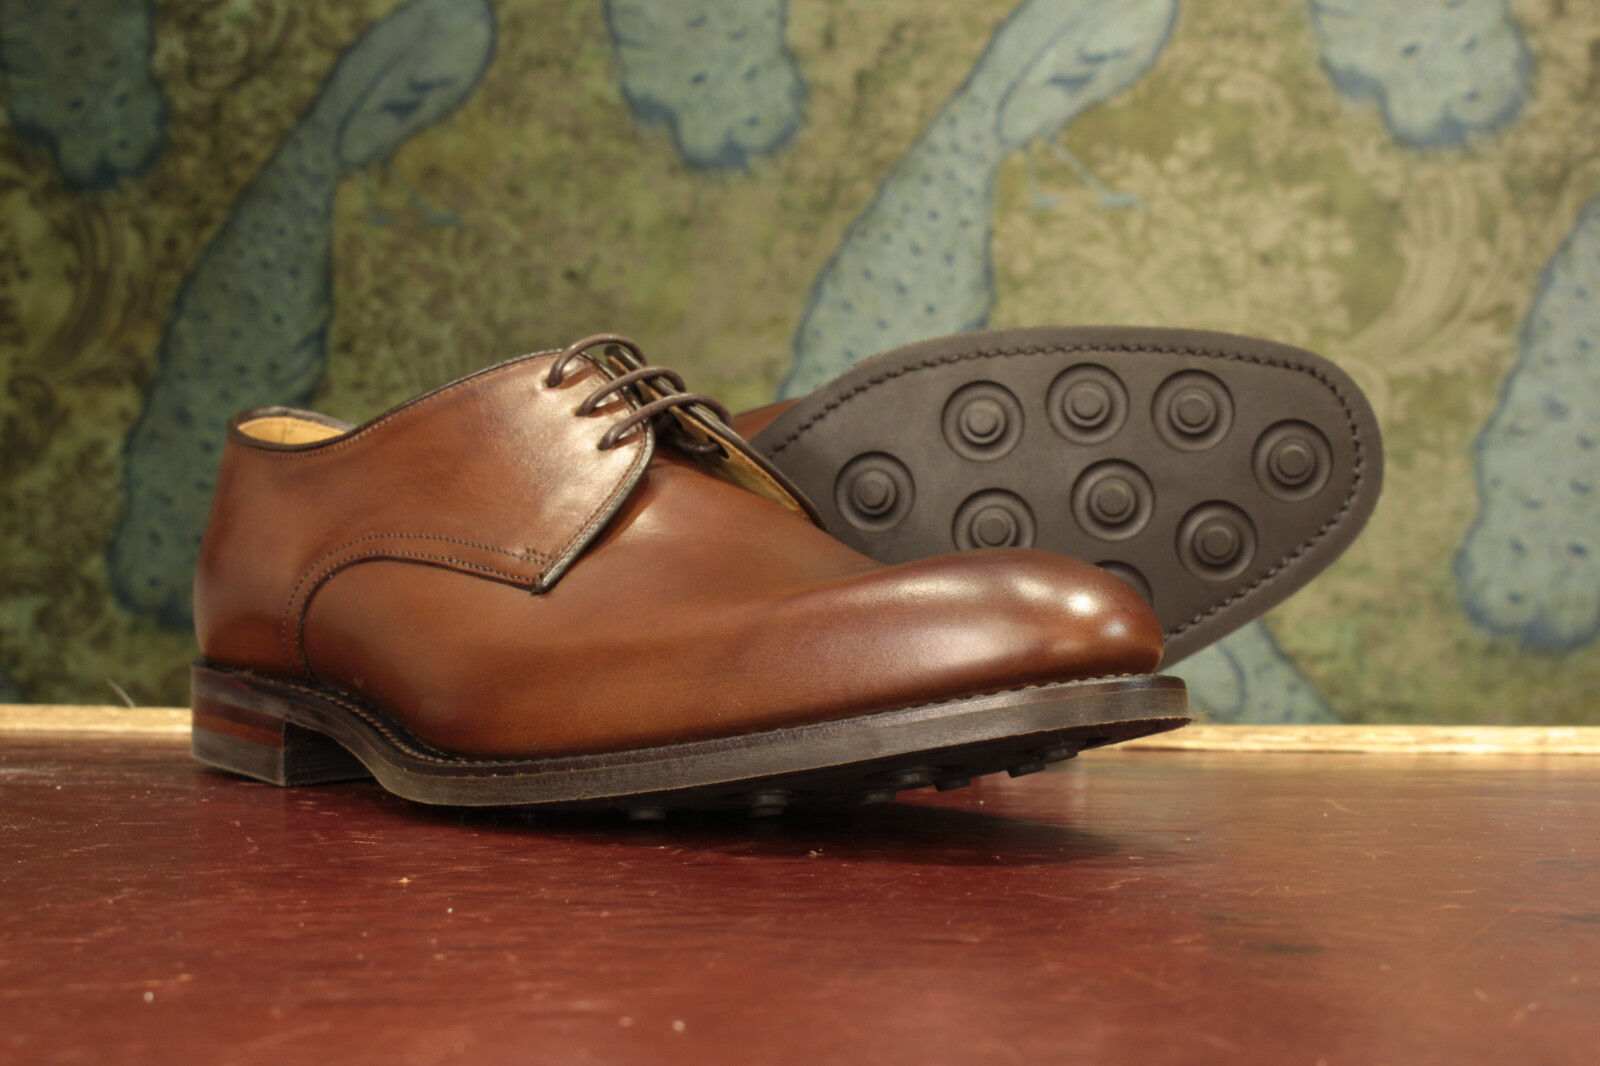 Loake Gable Brown Derby Shoes 10½G - New Seconds RRP £200 (16637)